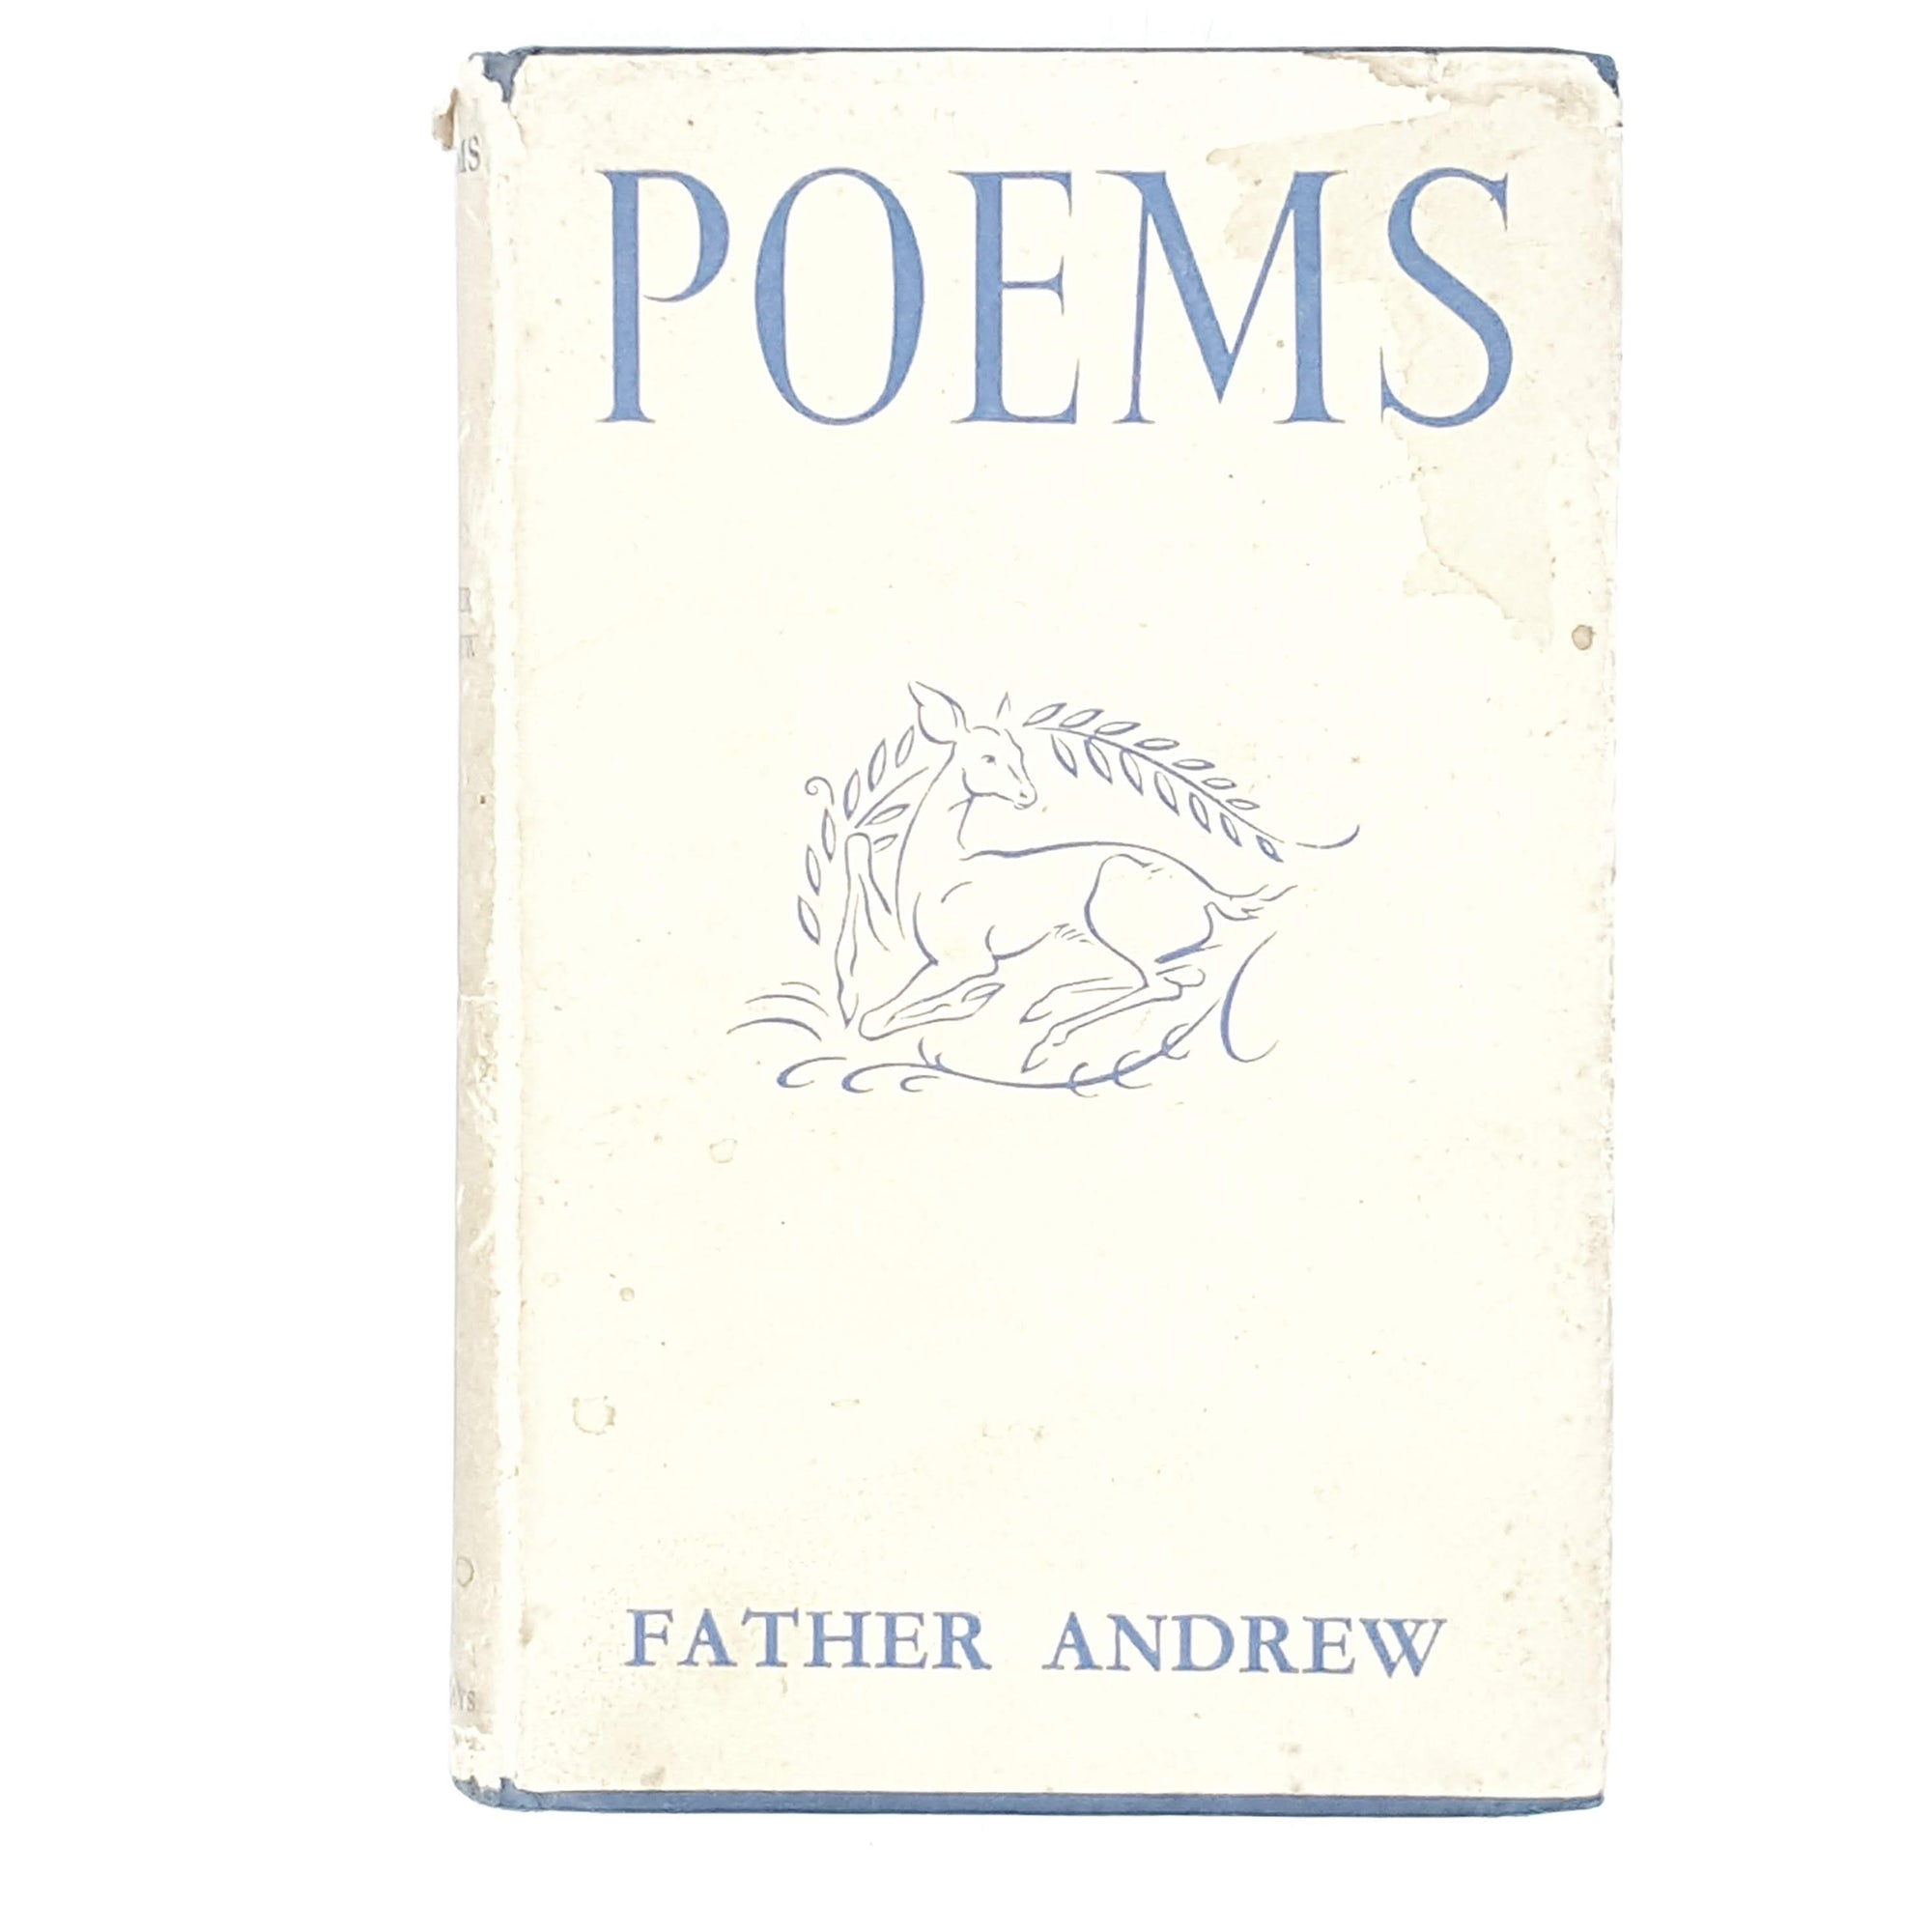 First Edition Poems by Father Andrew 1950